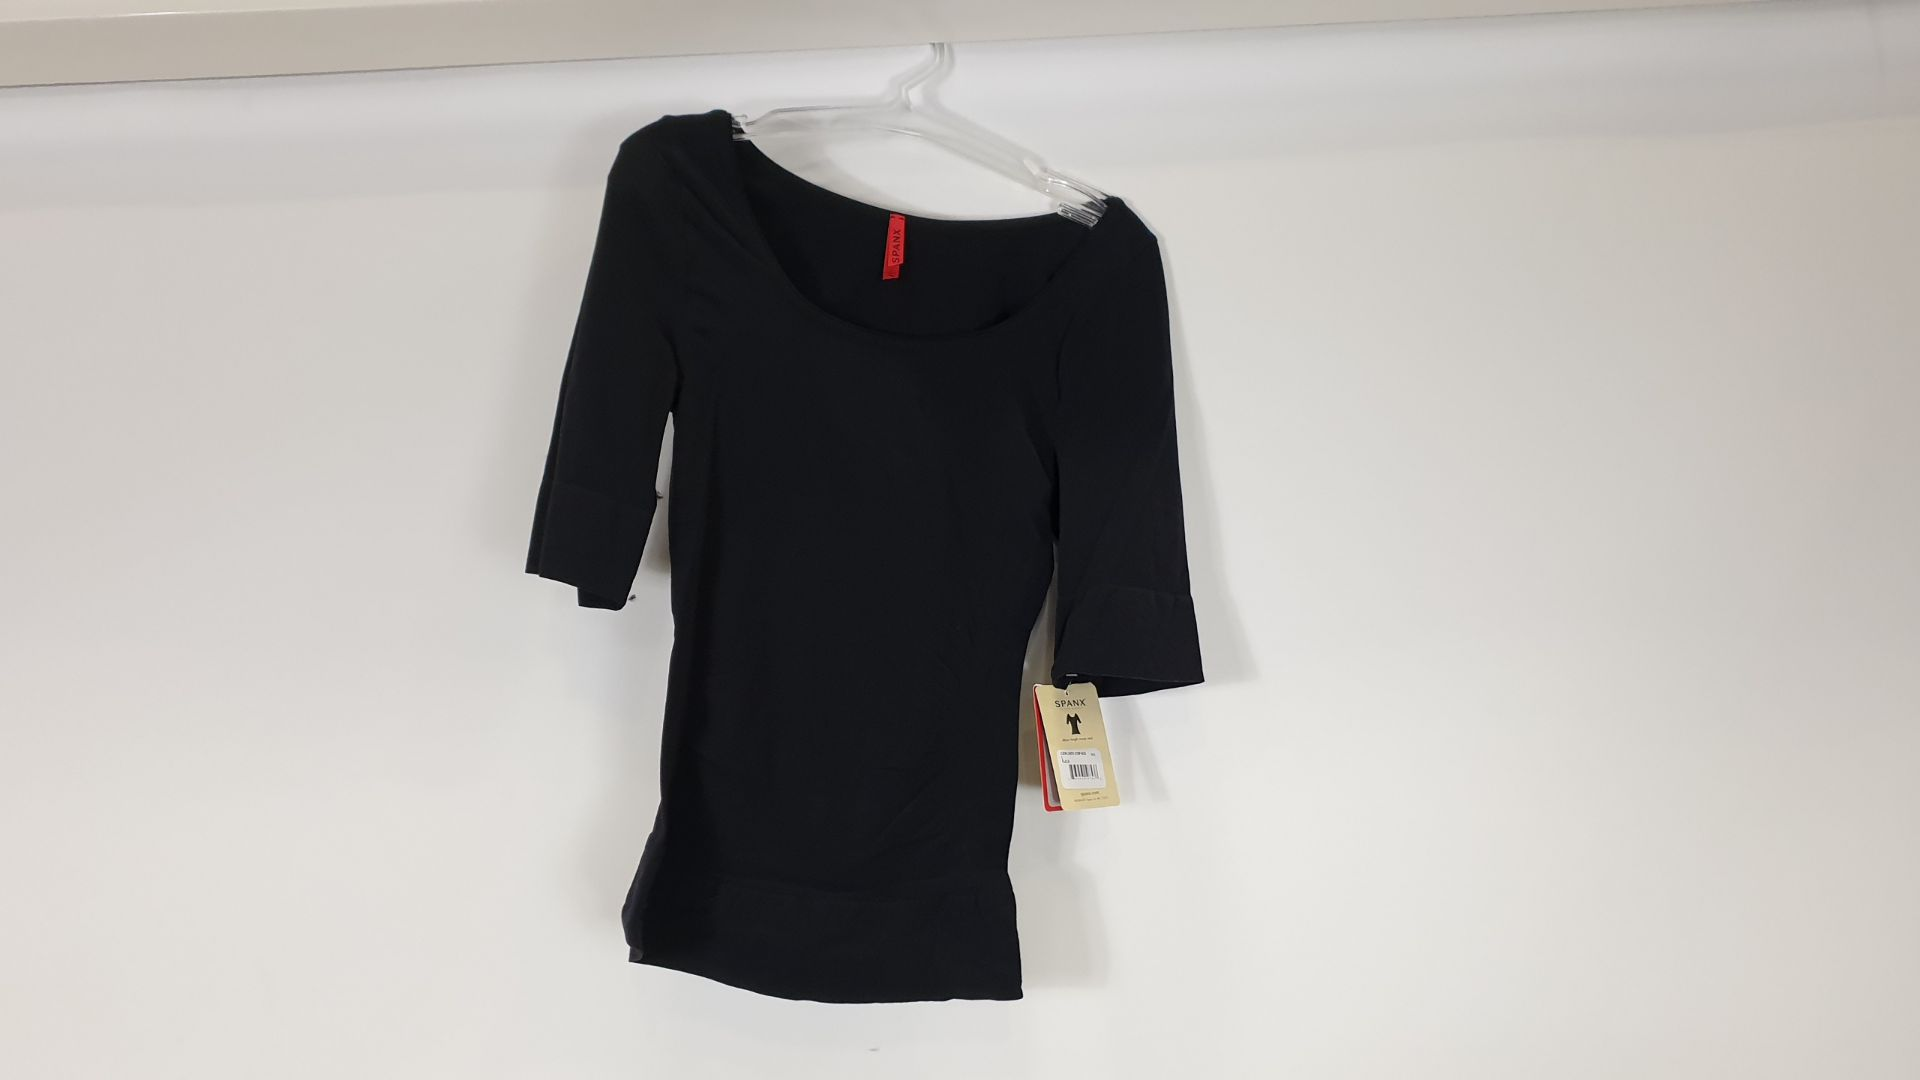 Lot 740 - 12 X BRAND NEW SPANX BLACK ELBOW LENGTH SCOOP NECK - IN SIZE L